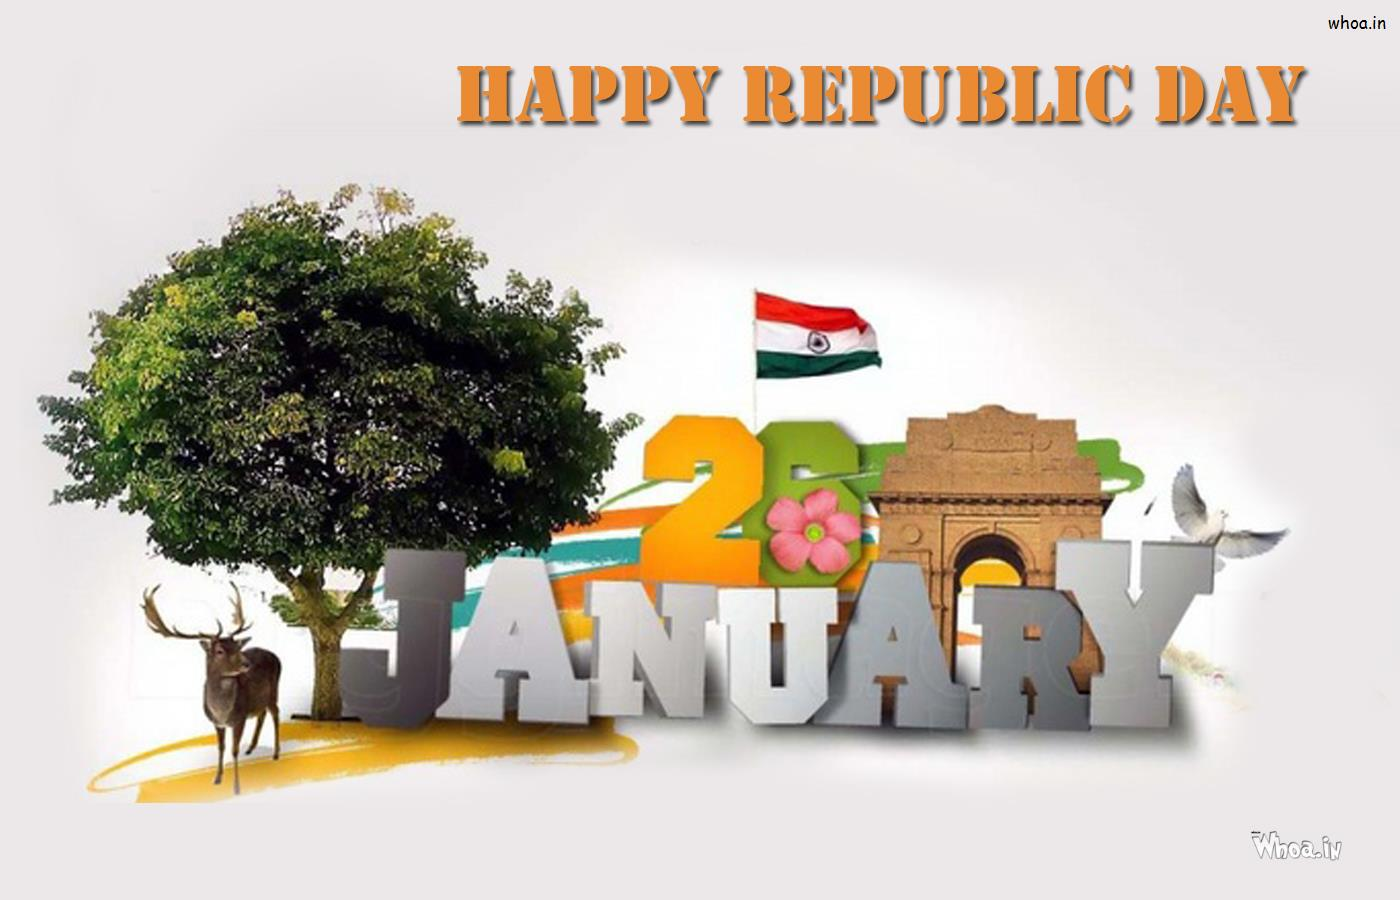 Happy republic day 2018 images hd pics download photos for 26th happy republic day 2018 images hd pics download photos for 26th january 2018 happy republic day 2018 wishes quotes wallpapers live information m4hsunfo